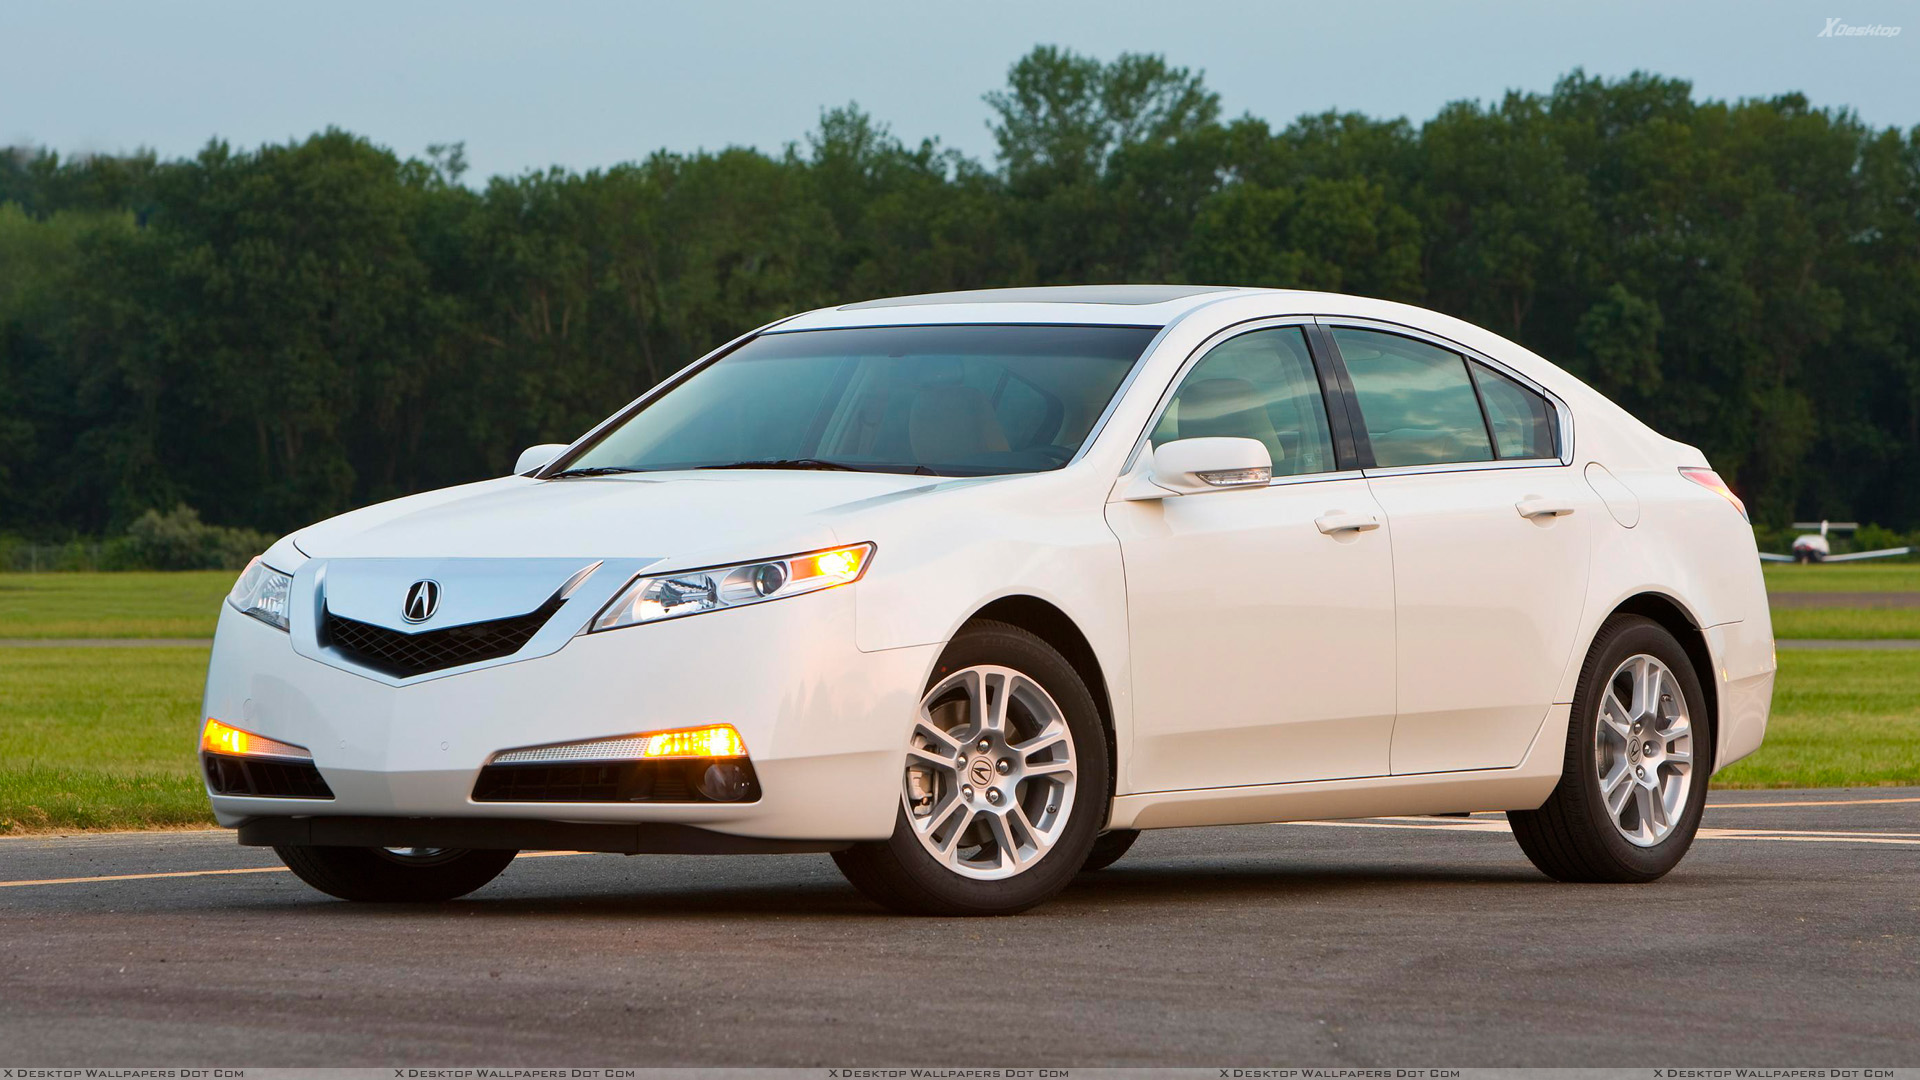 acura tl wallpapers photos images in hd